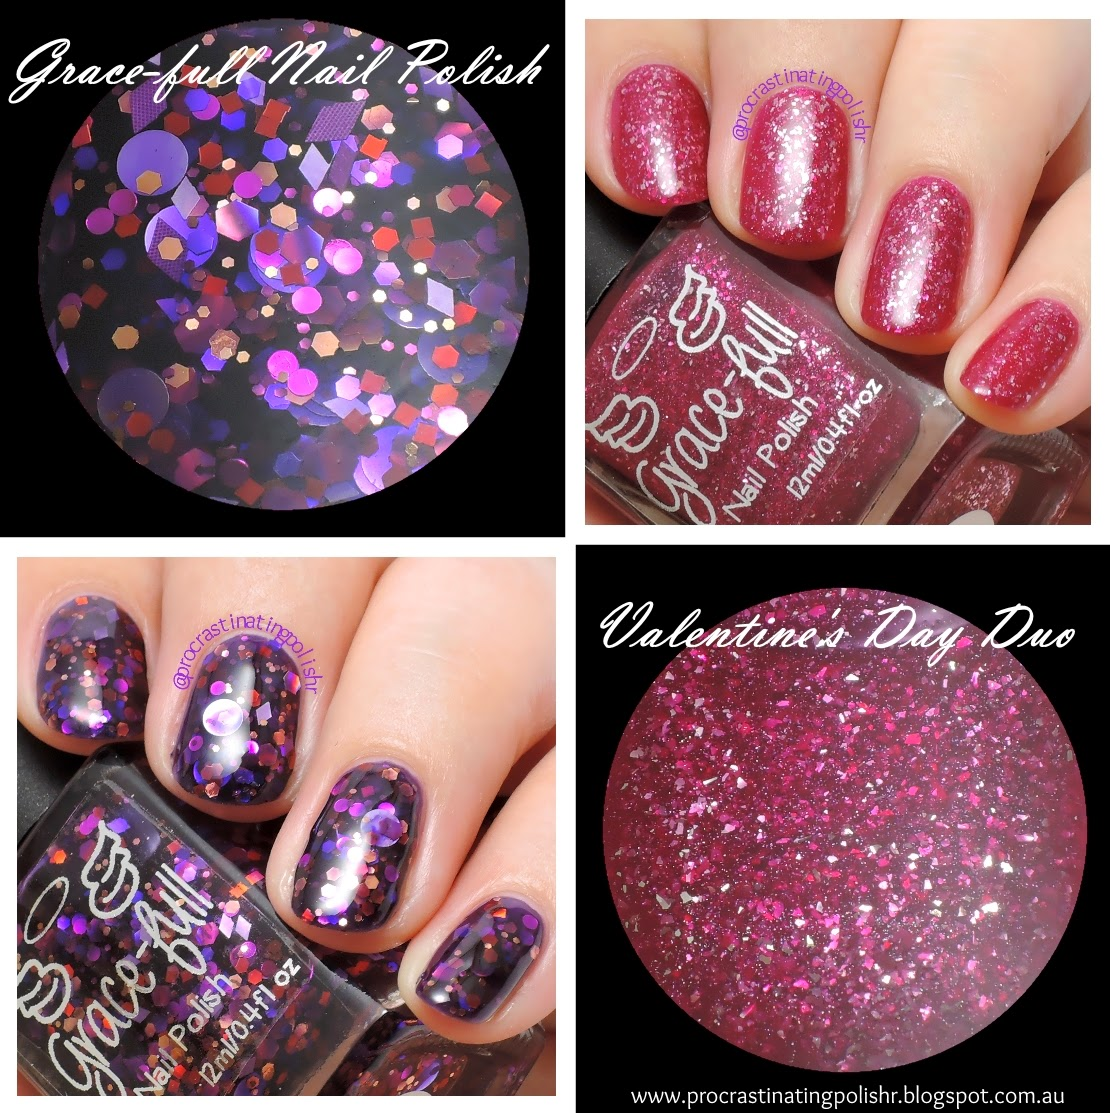 Grace-full Nail Polish Valentine's Day Duo